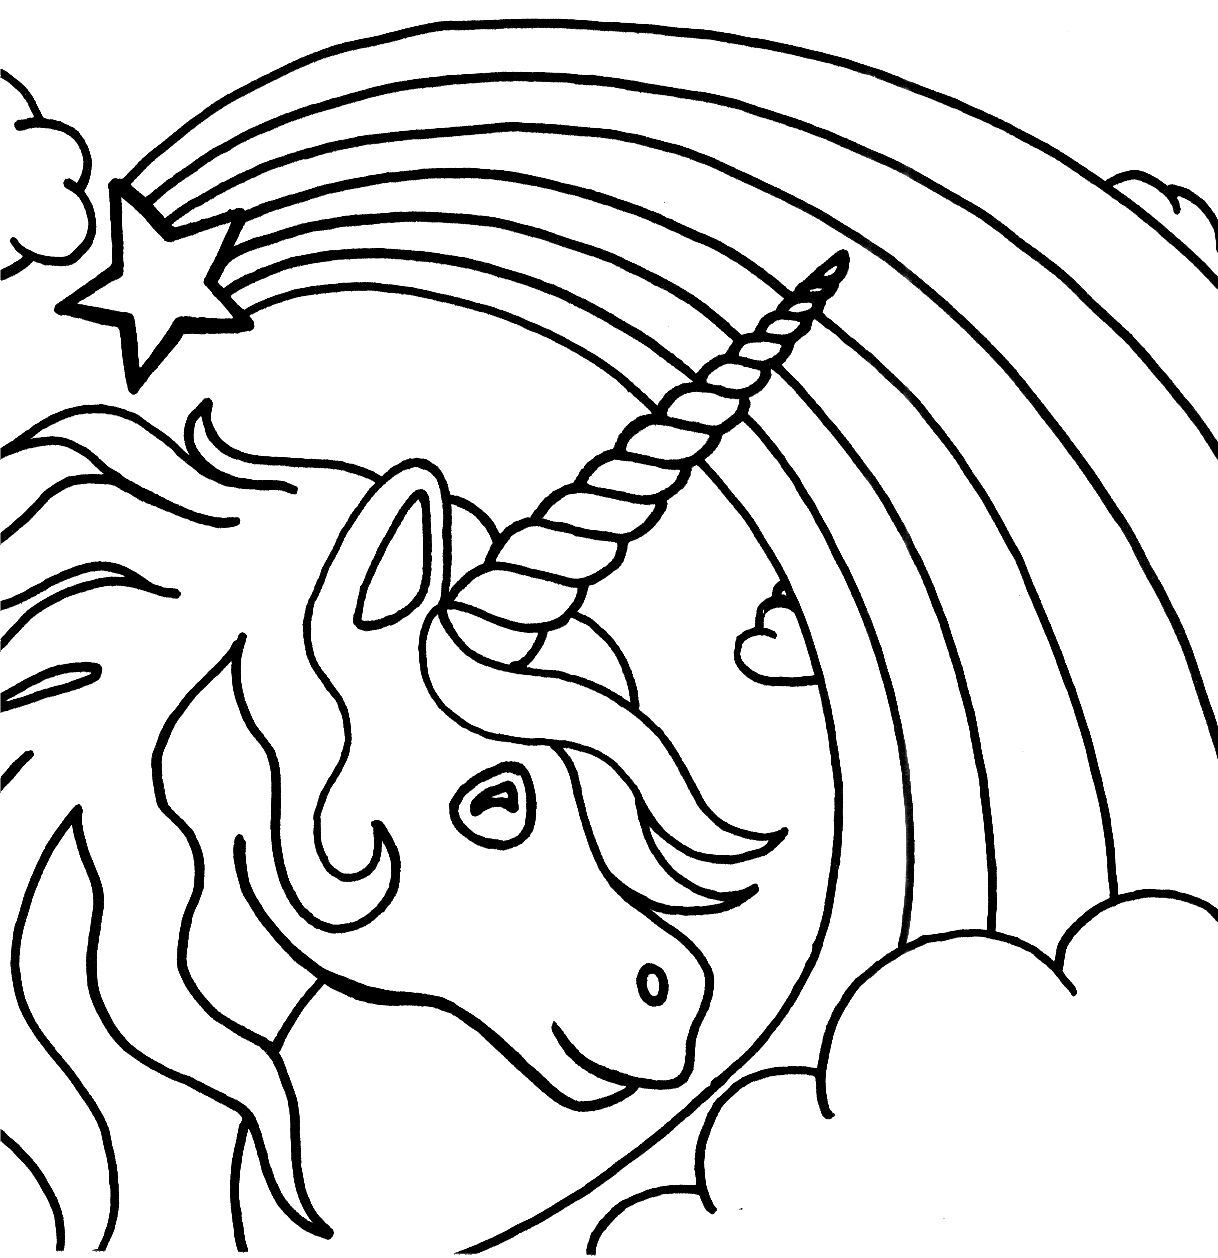 unicorn rainbow coloring pages 01 - Rainbow Picture To Colour